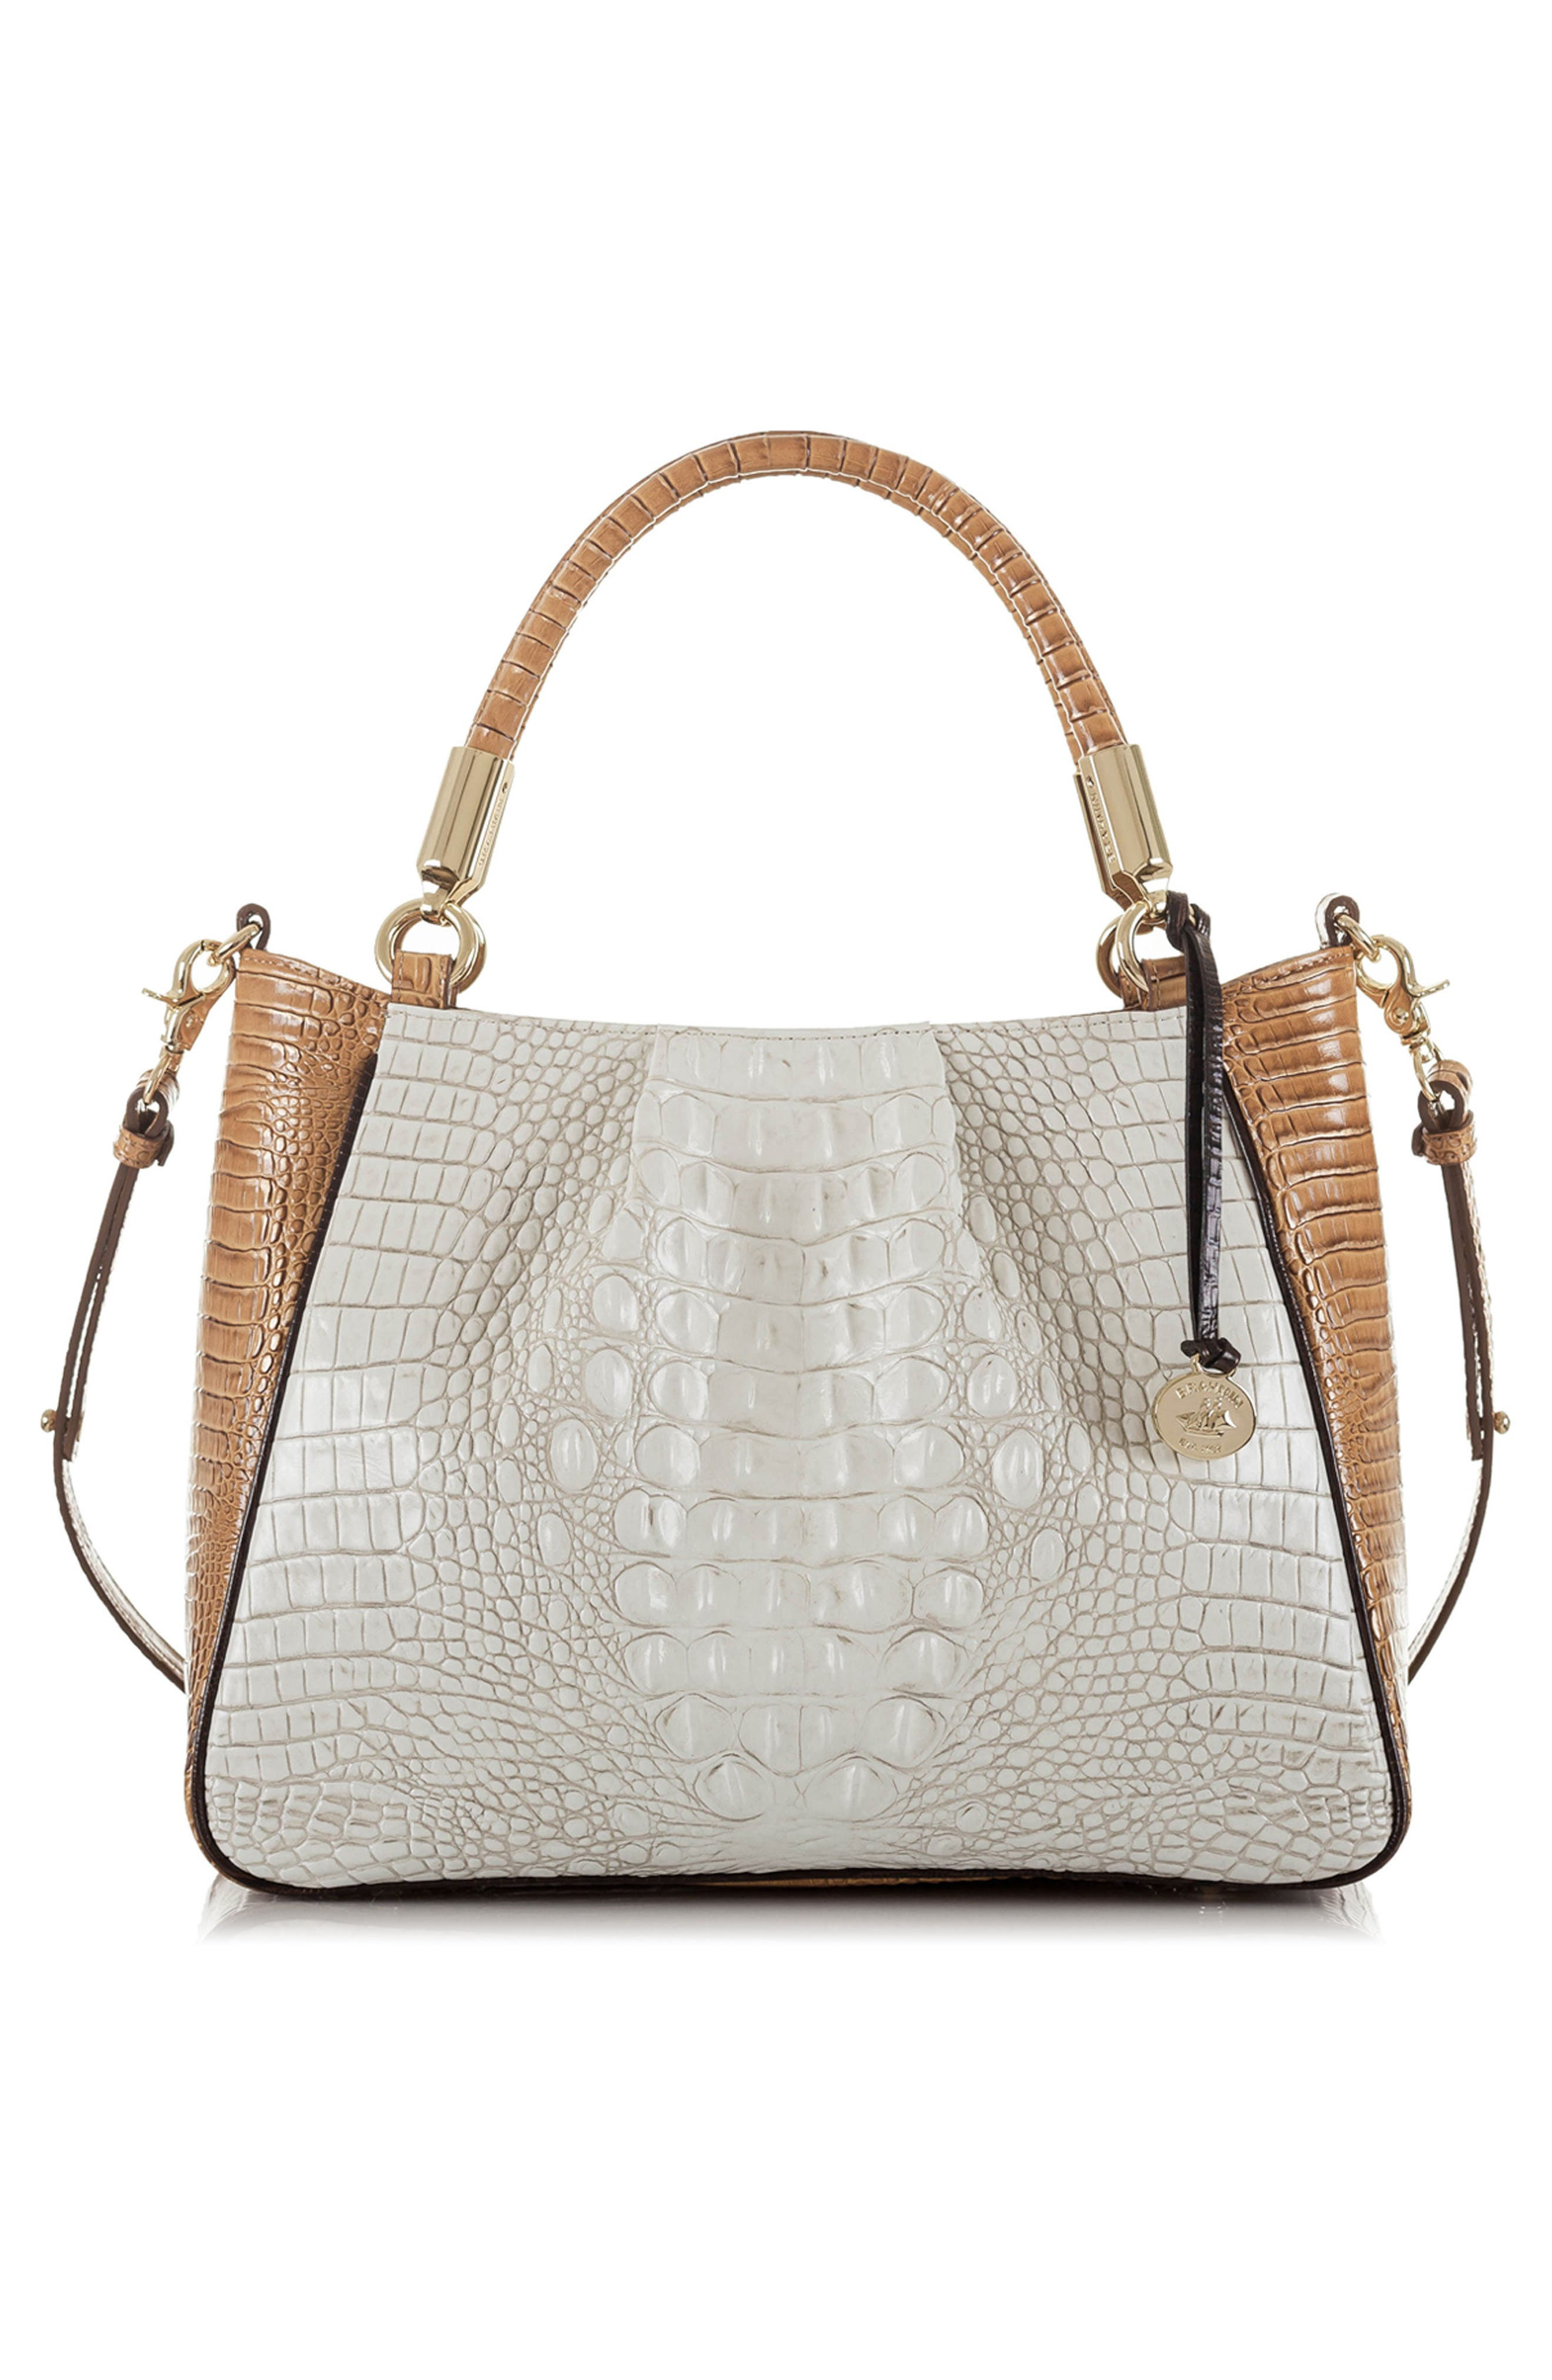 Ruby Croc Embossed Leather Satchel,                             Alternate thumbnail 2, color,                             Coconut Kedima